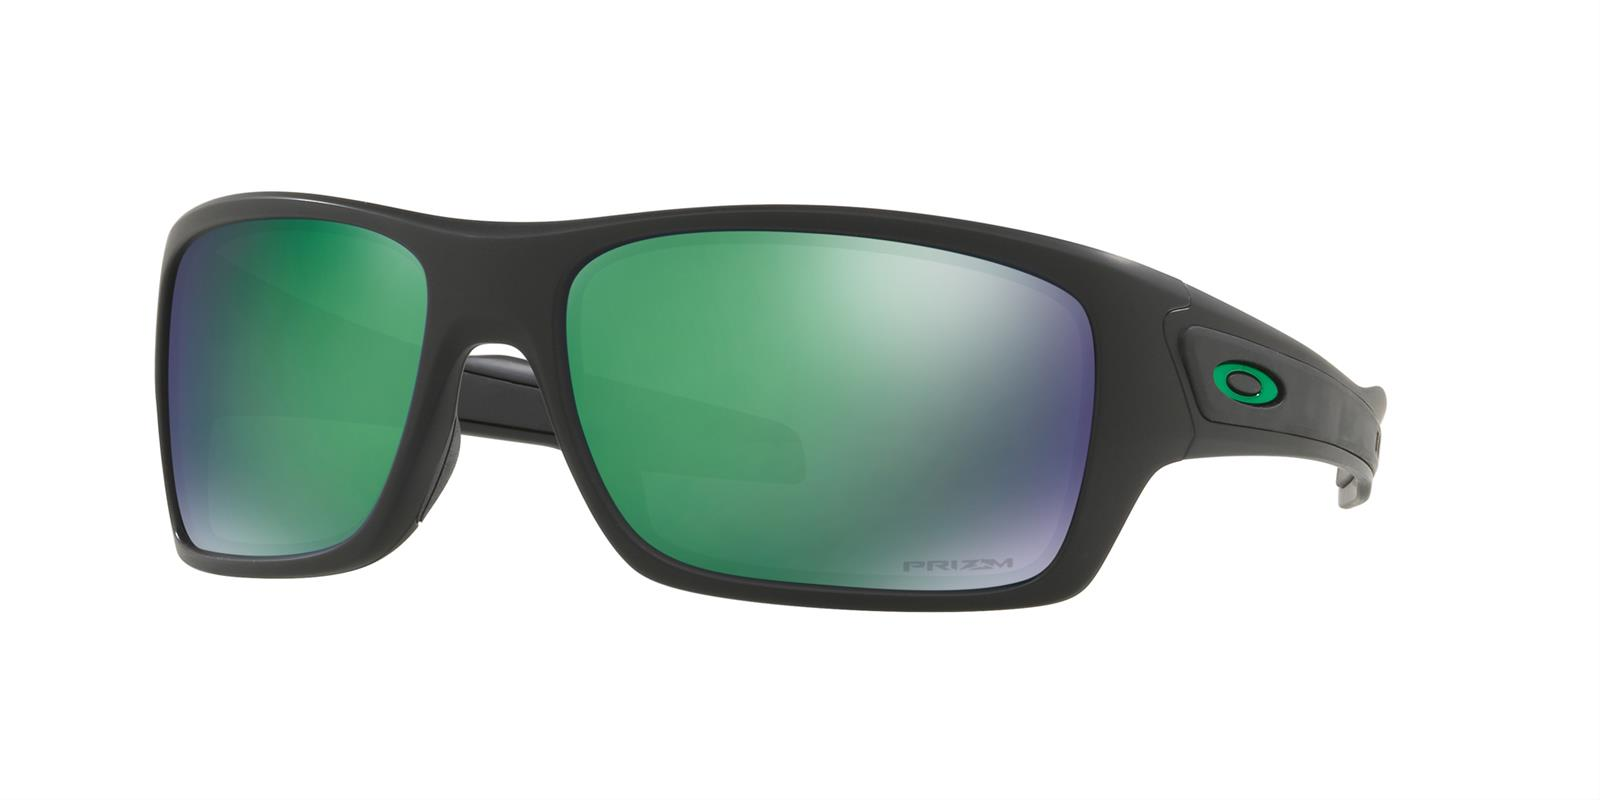 433aa5fa3d Oakley Turbine Prizm Sunglasses OO9263-4563 - Free Shipping on Orders Over   99 at Summit Racing